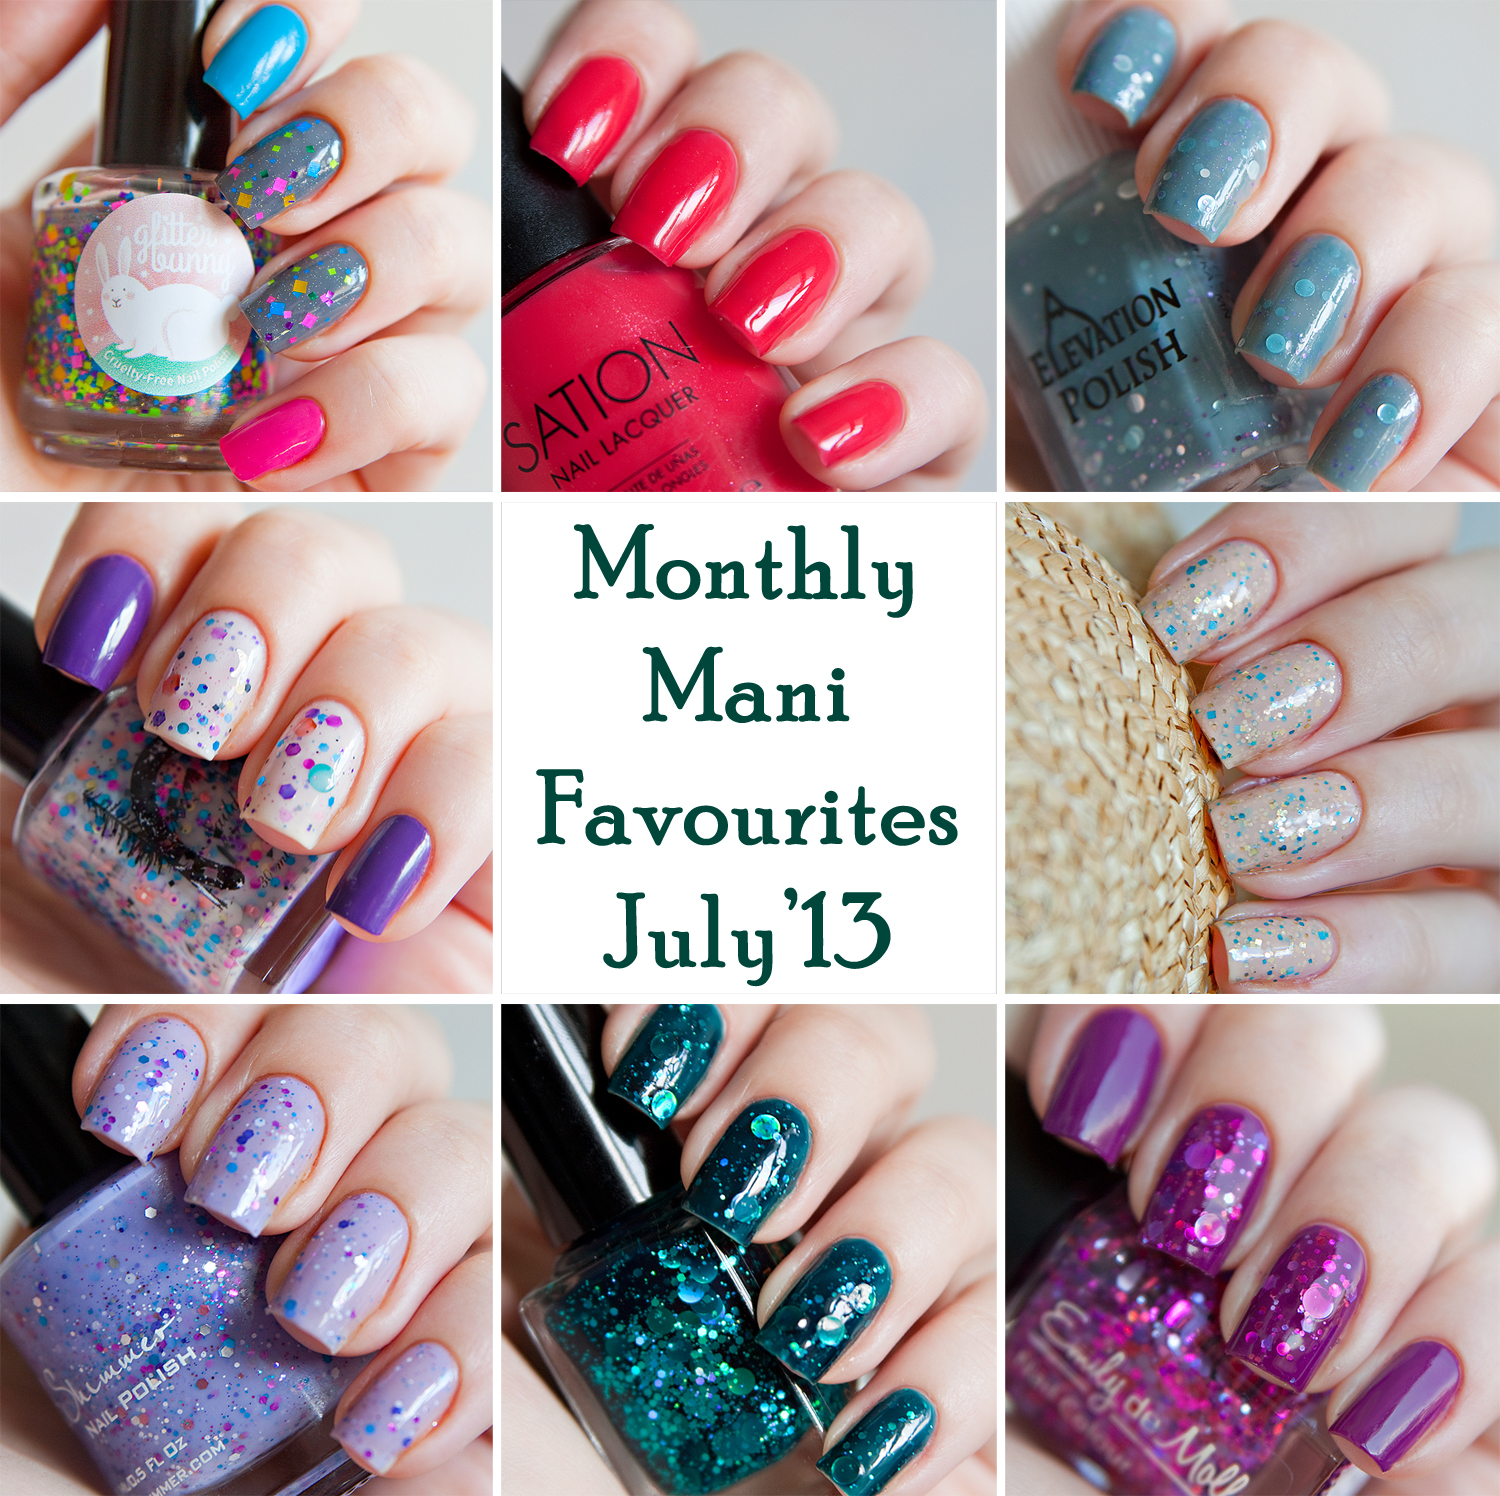 Monthly Mani Favourites - July 2013